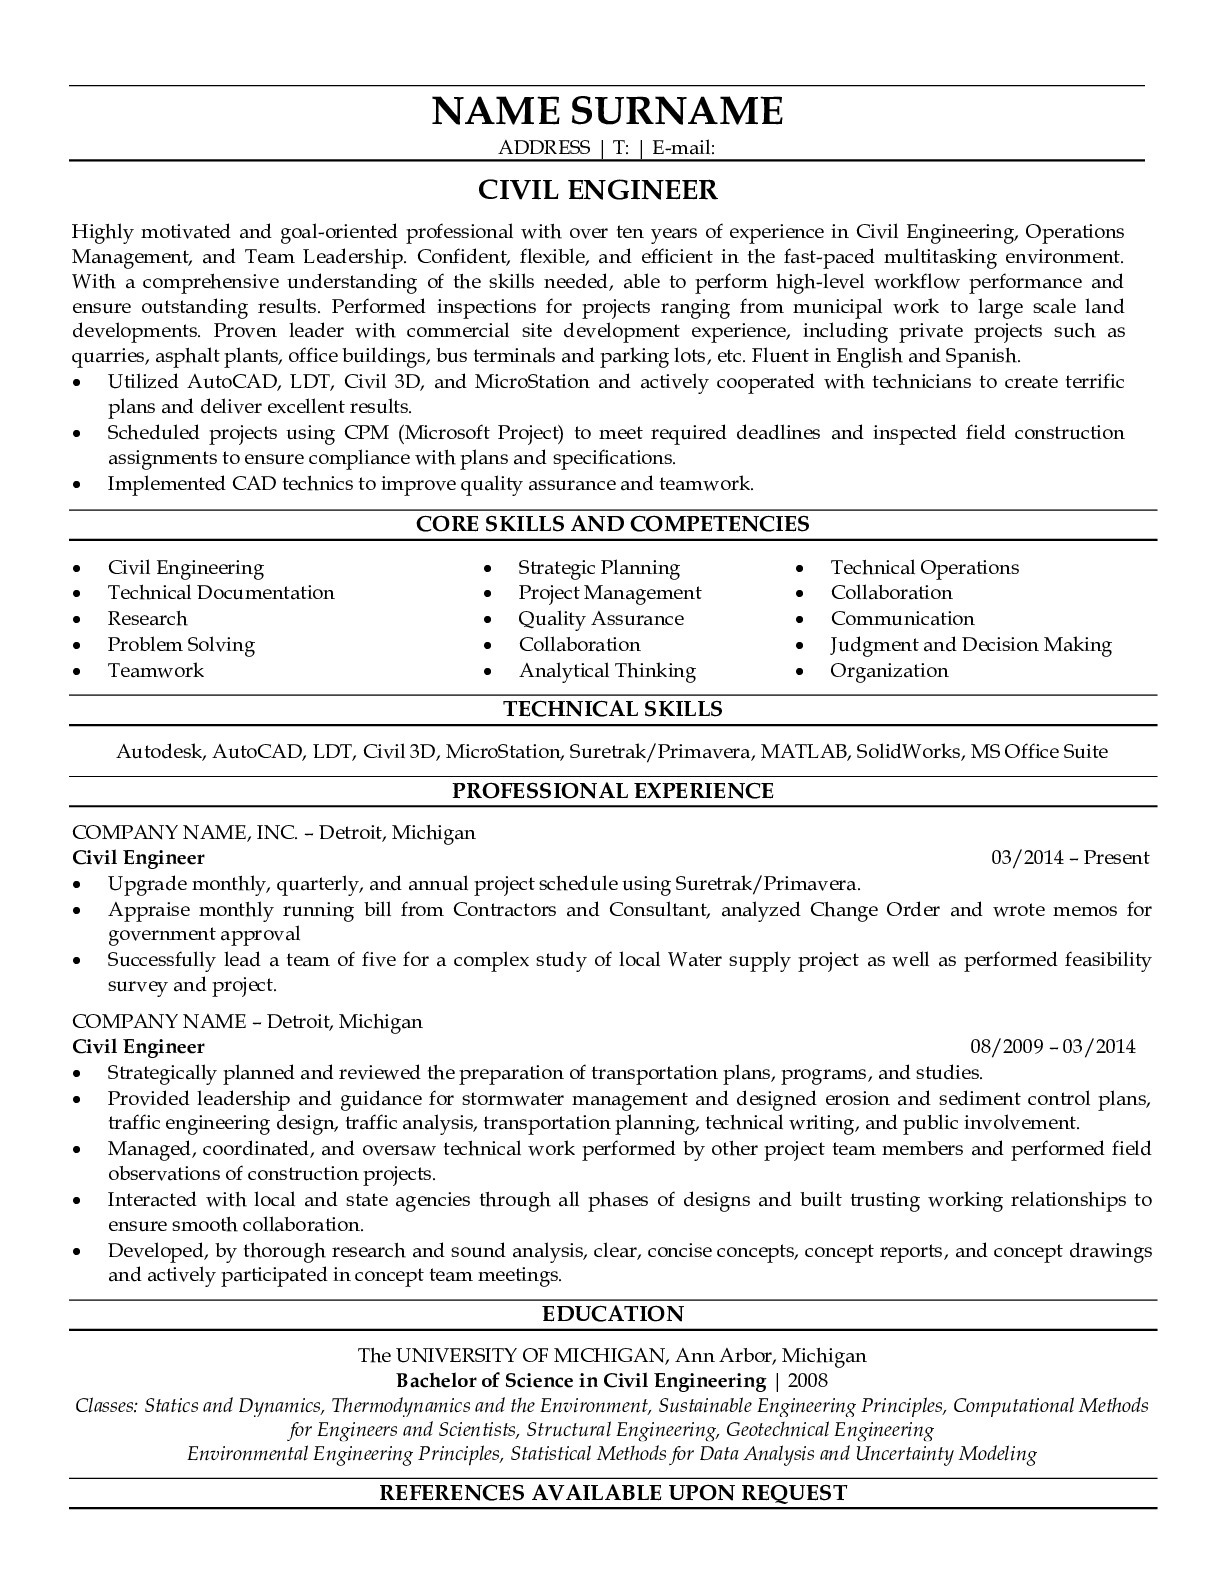 Resume Example for Civil Engineer